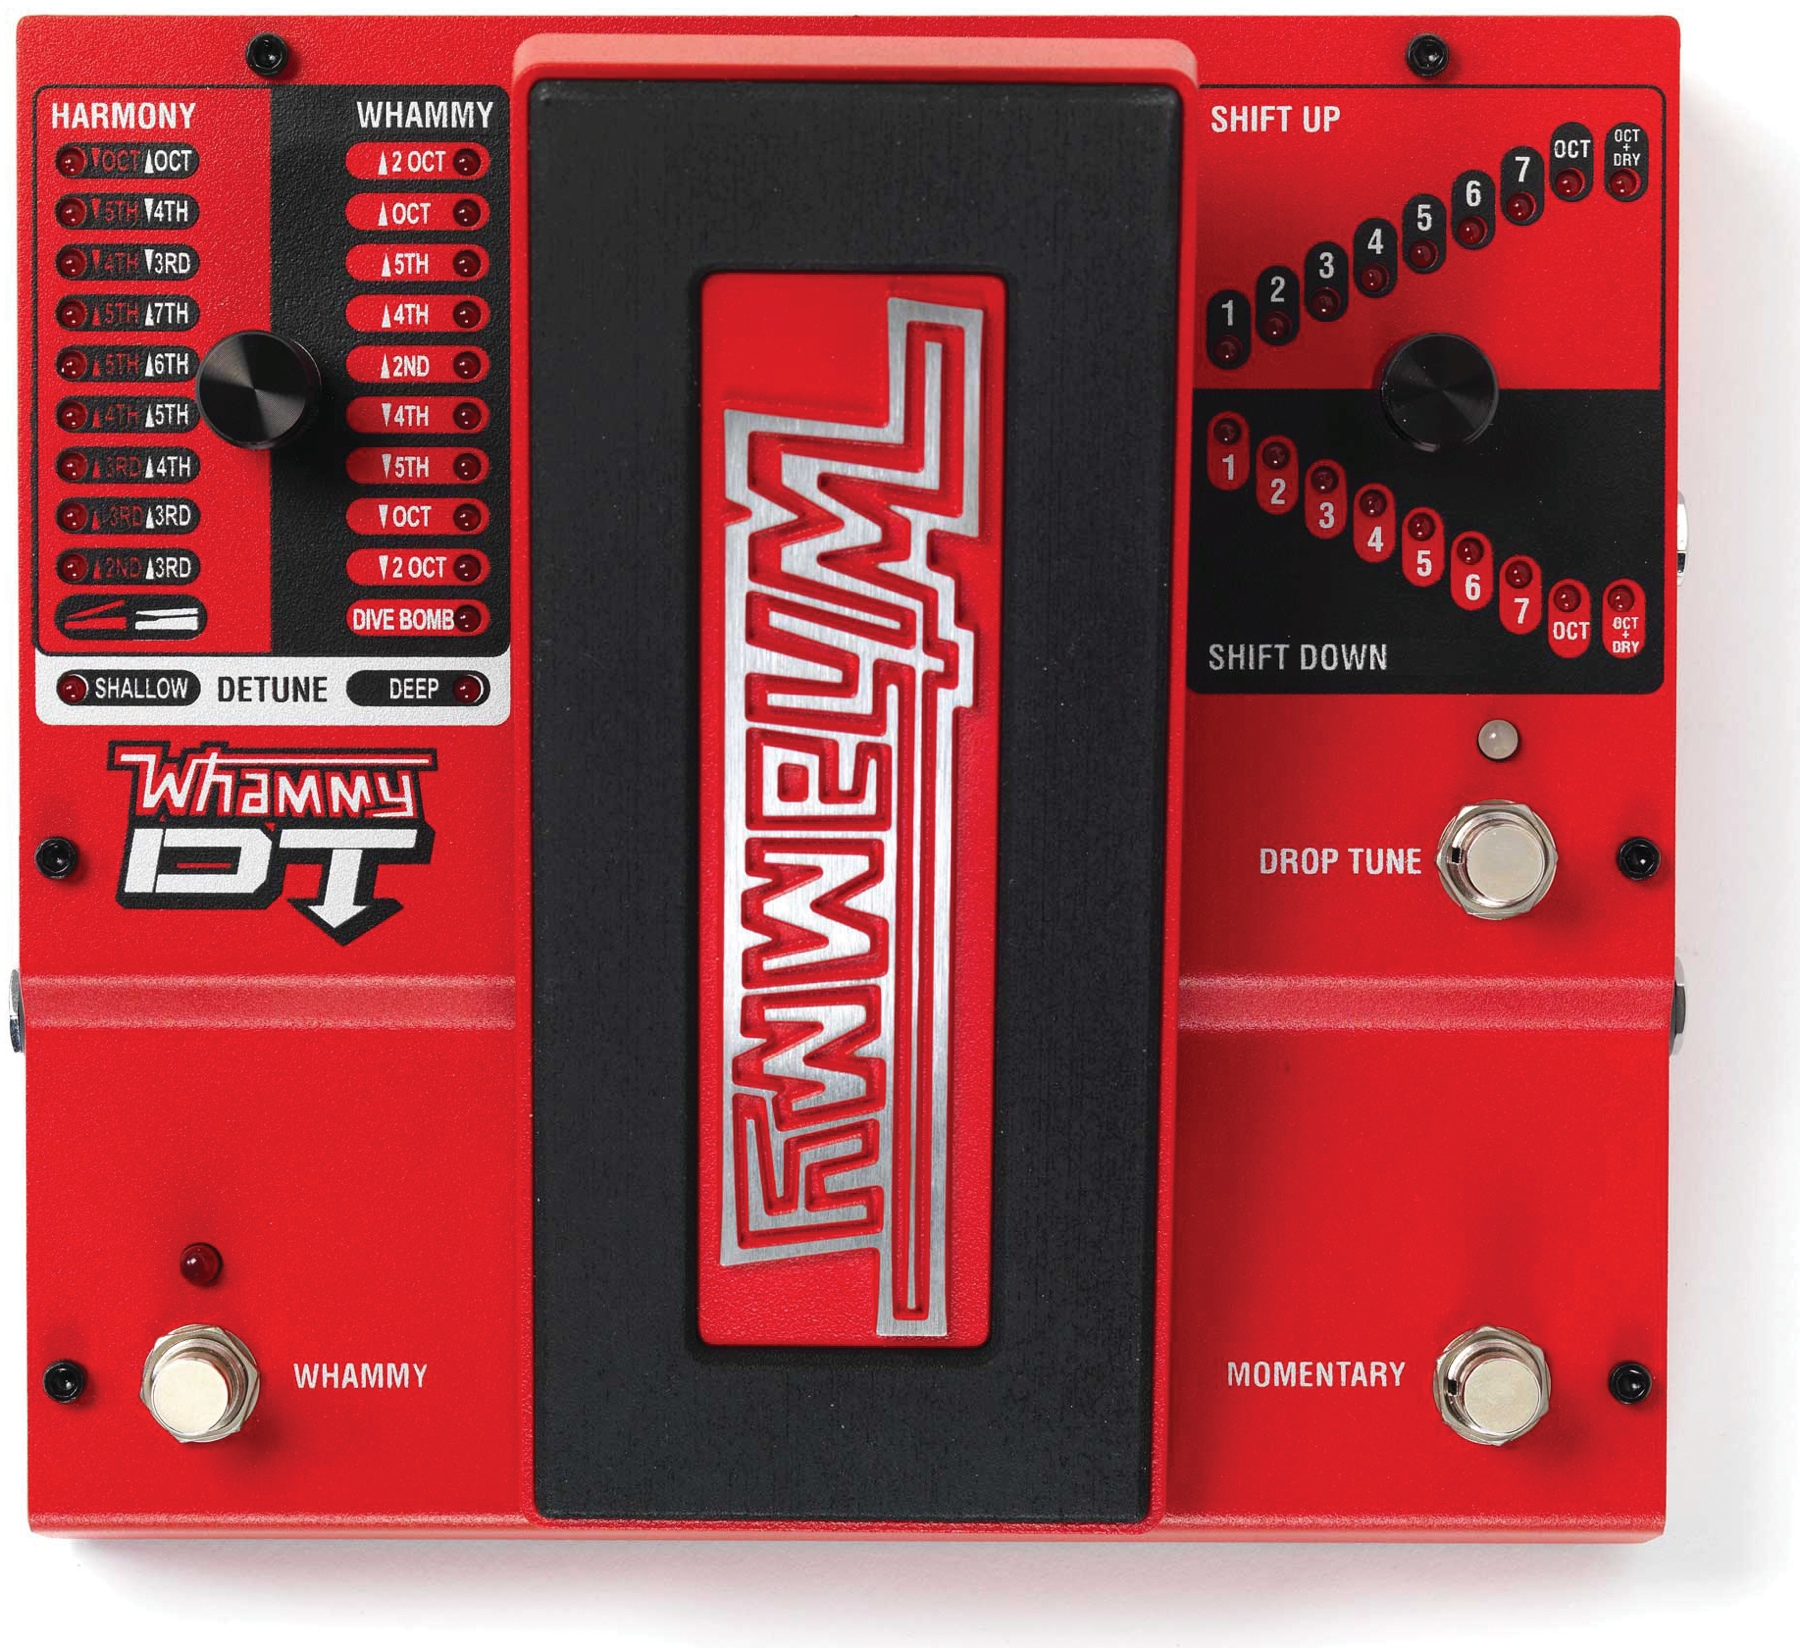 DigiTech Whammy DT Drop Tune Pedal